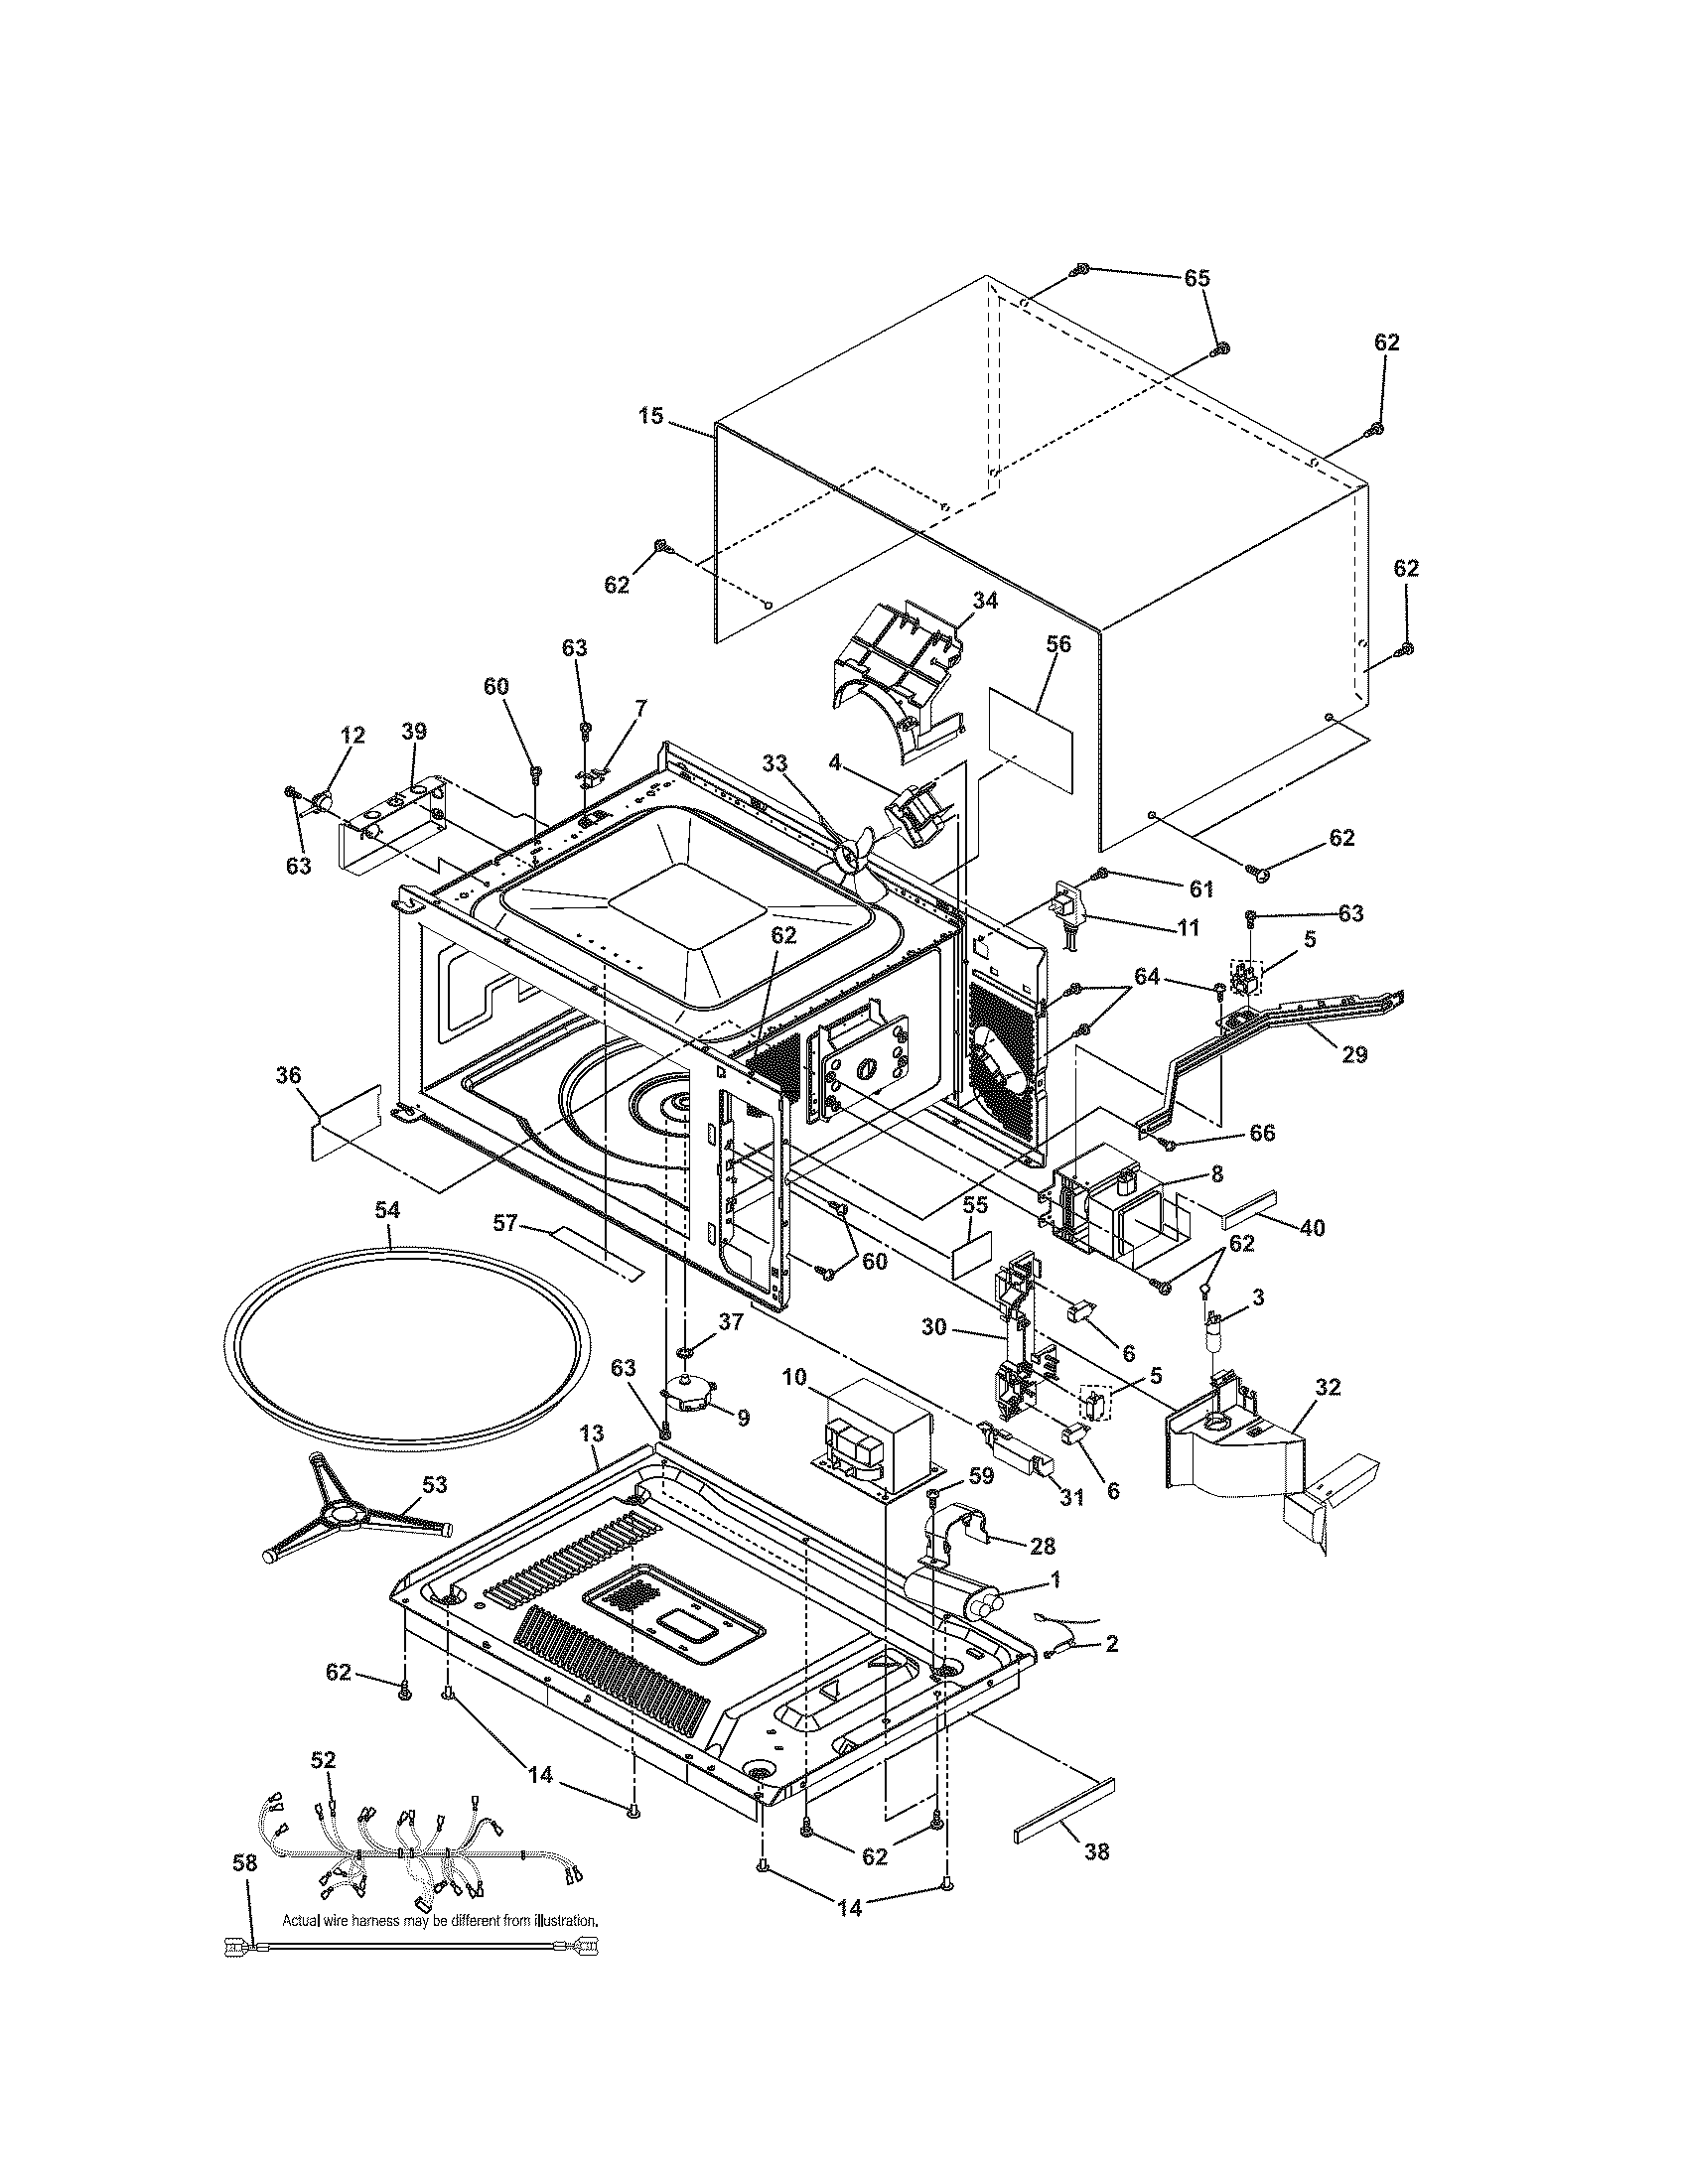 MICROWAVE Diagram & Parts List for Model 79047853406